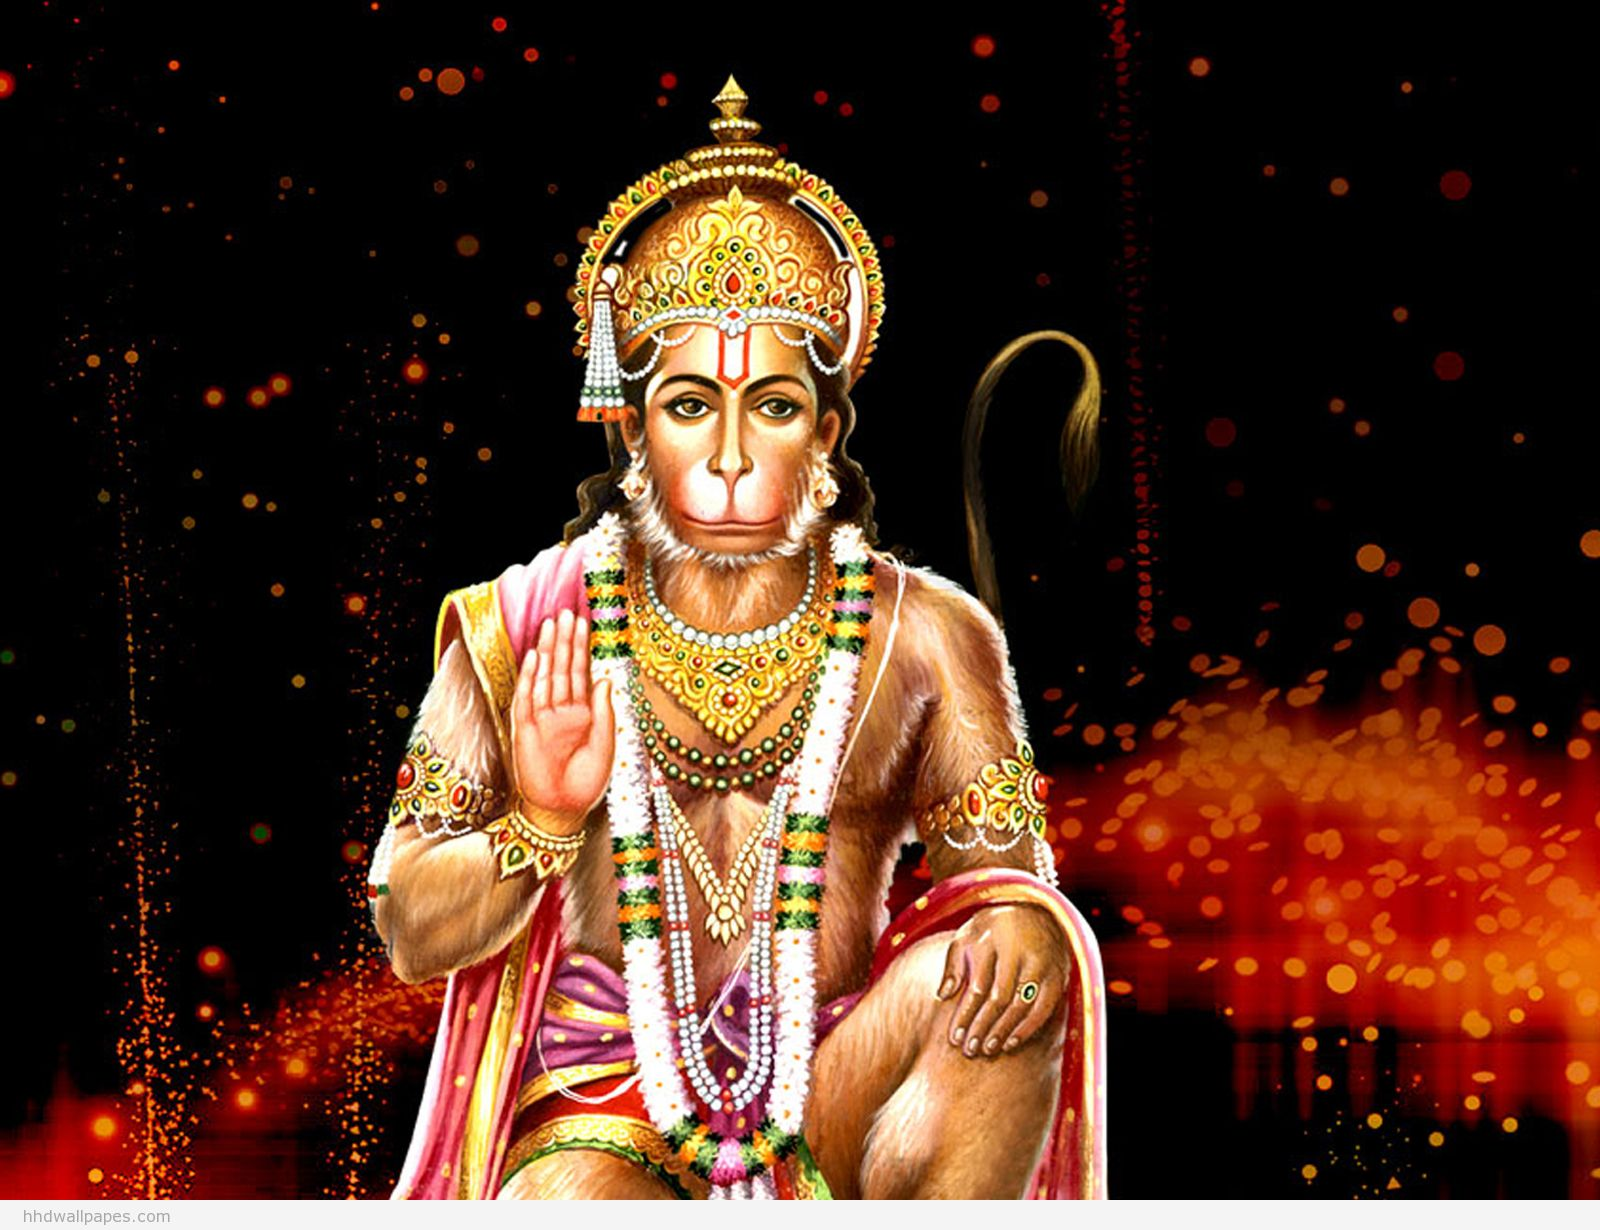 See Her Lord Hanuman Hd Wallpaper Free DownloadFree GAllery Wallpapers Of HanumanjiLord HD WallpaperHanuman Desktop PhotosHanuman